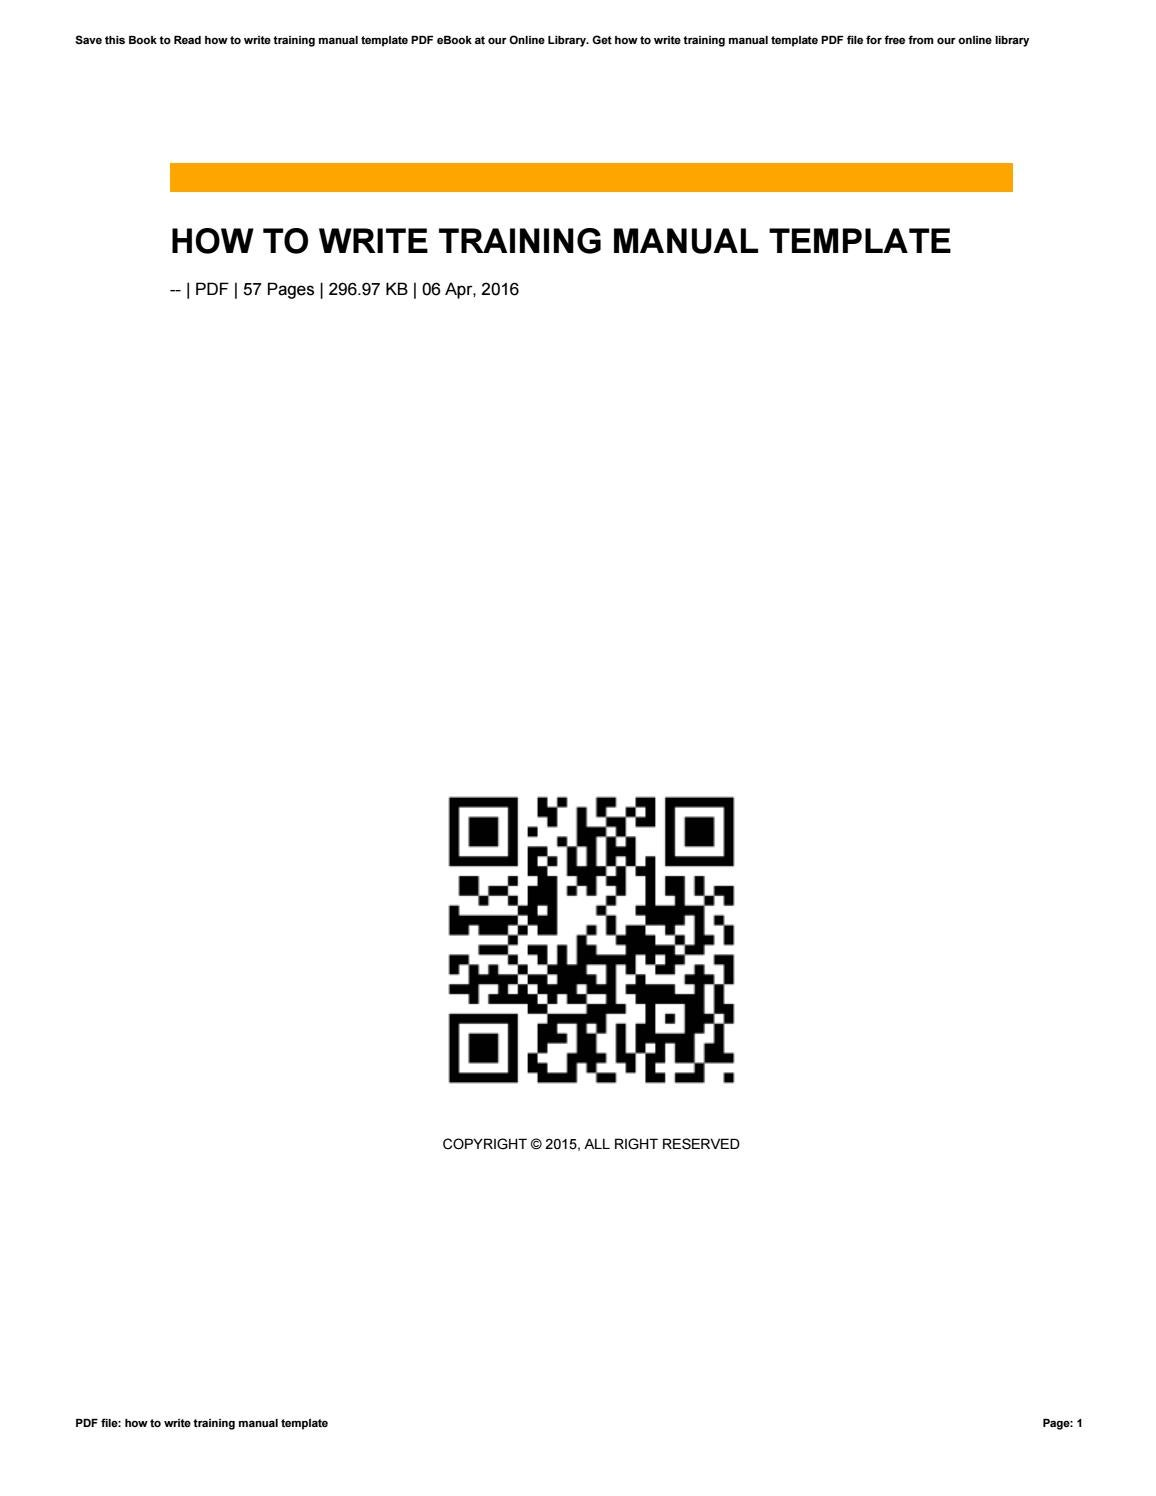 how to write training manual template by lpo08 issuu